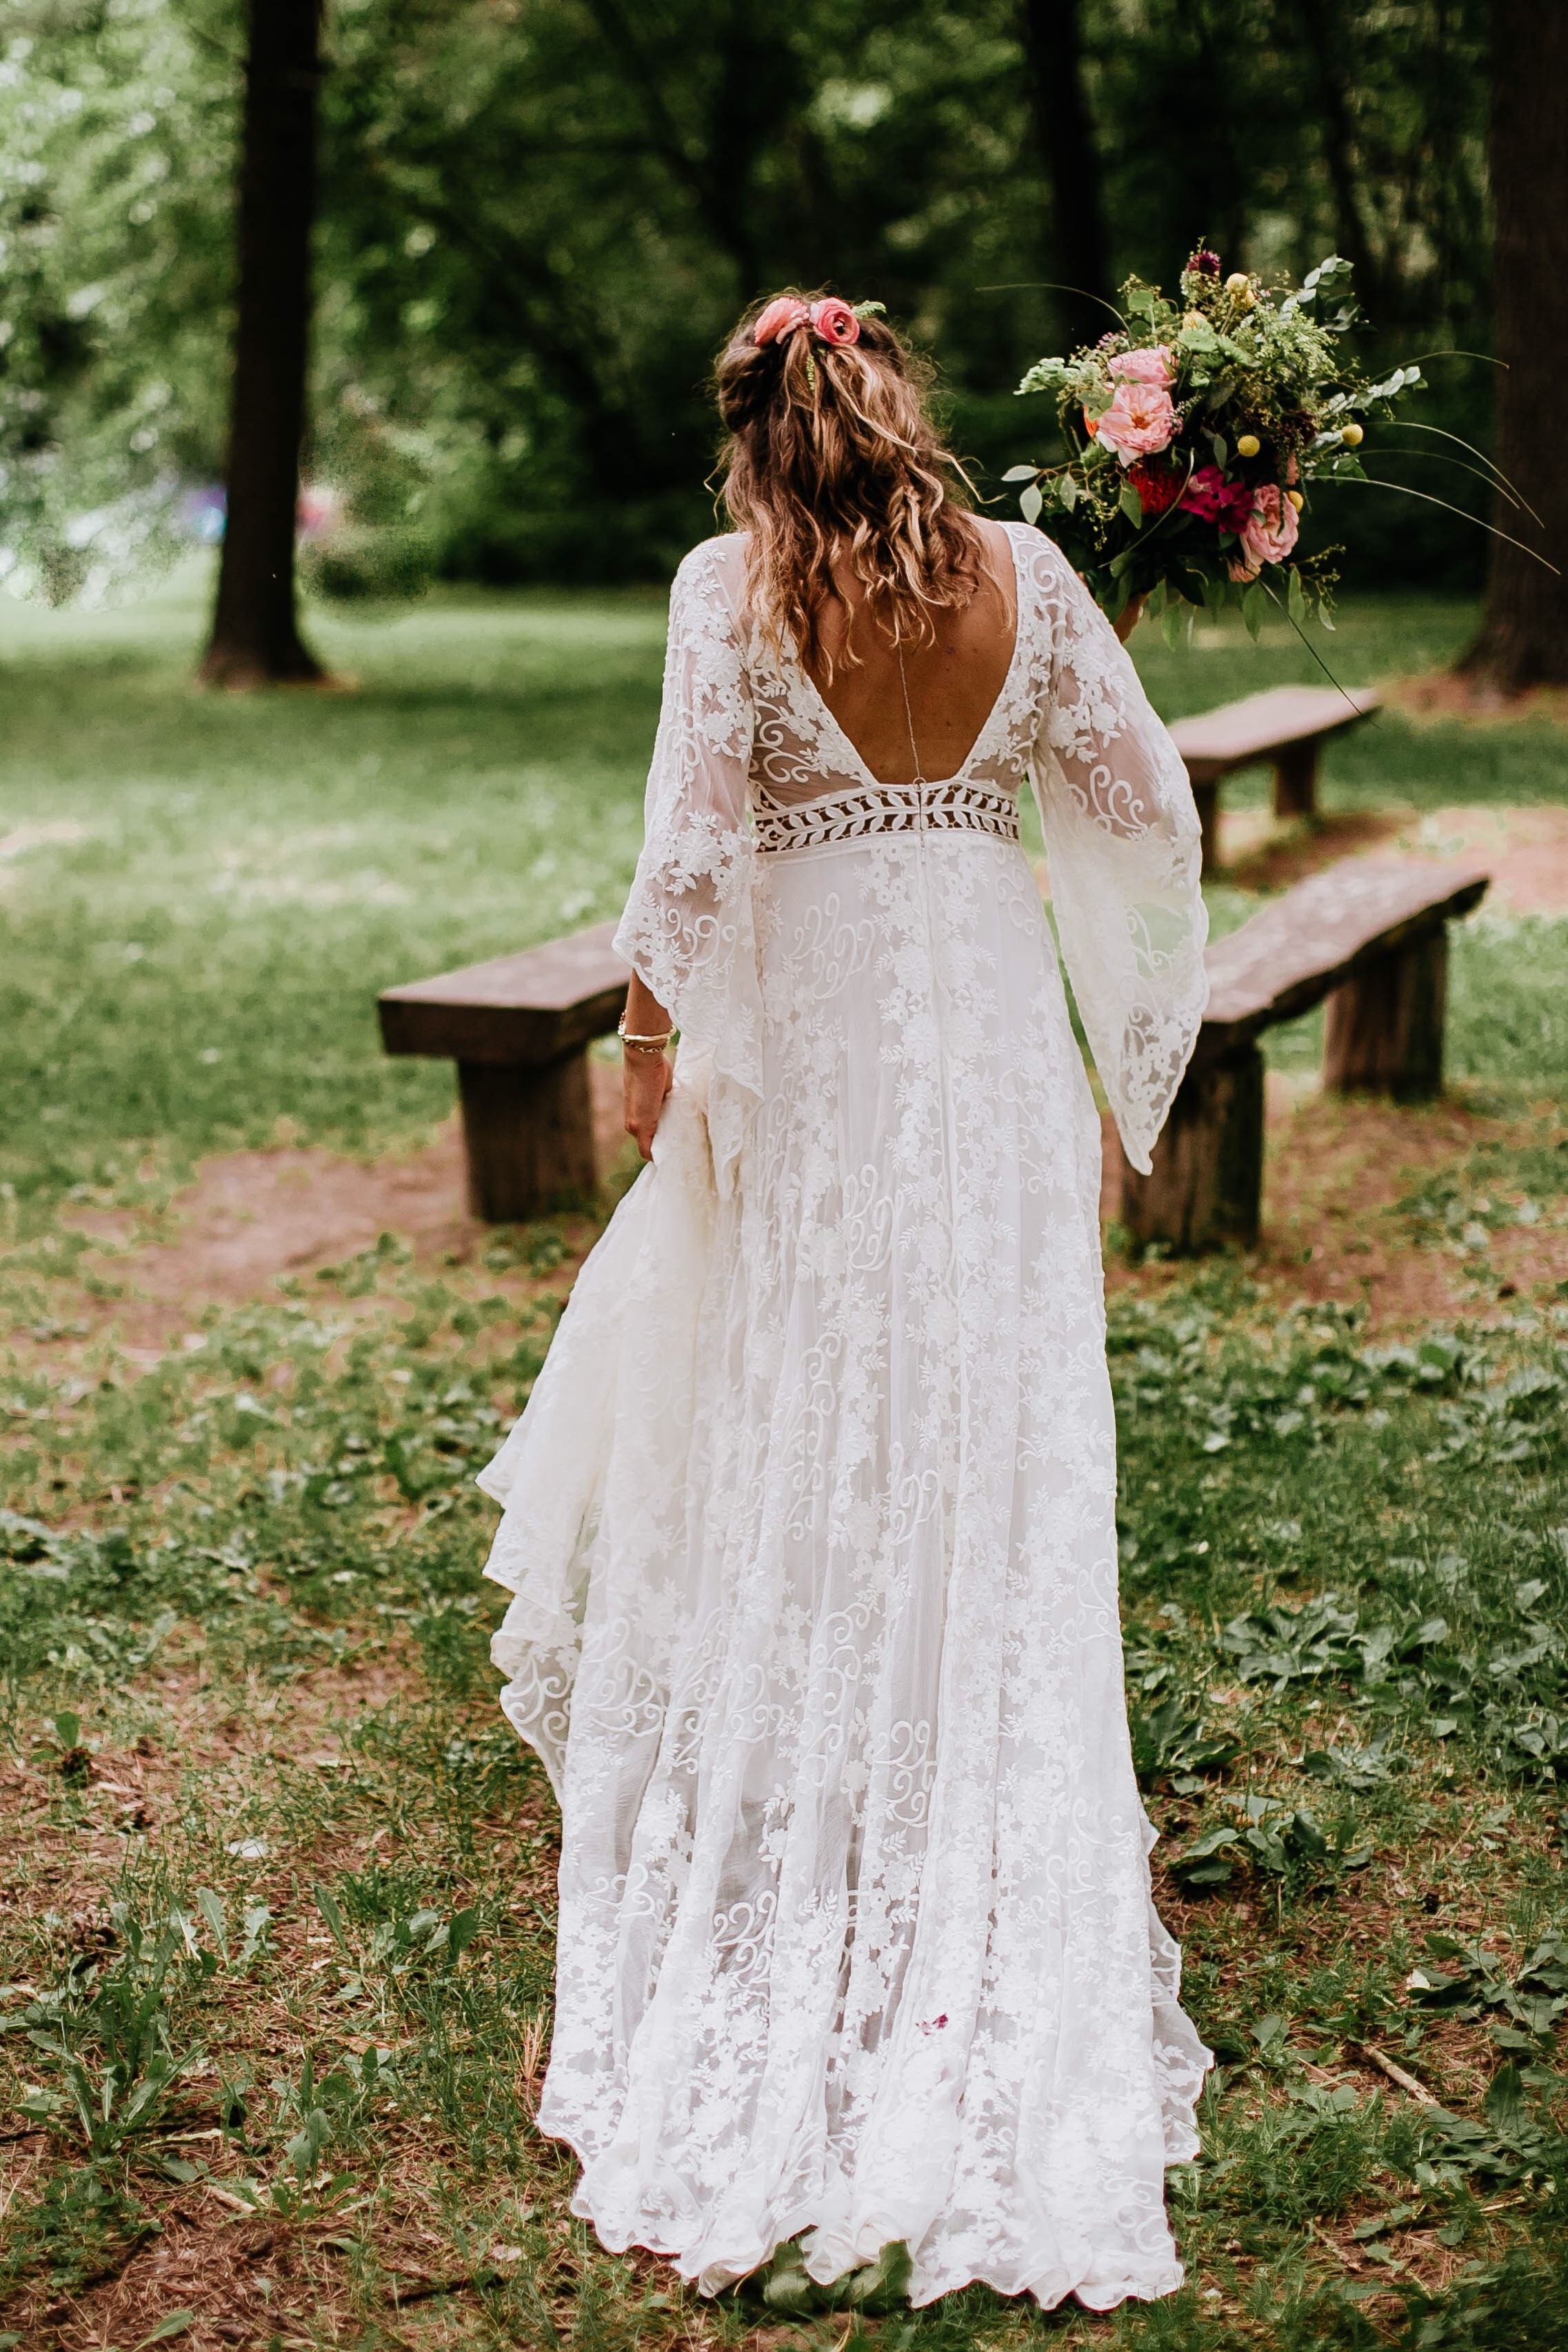 Real Wedding: Shelbi + Sam :: Intimate Backyard Wedding in Belle Sleeve Gown -   15 wedding Boho hippie ideas